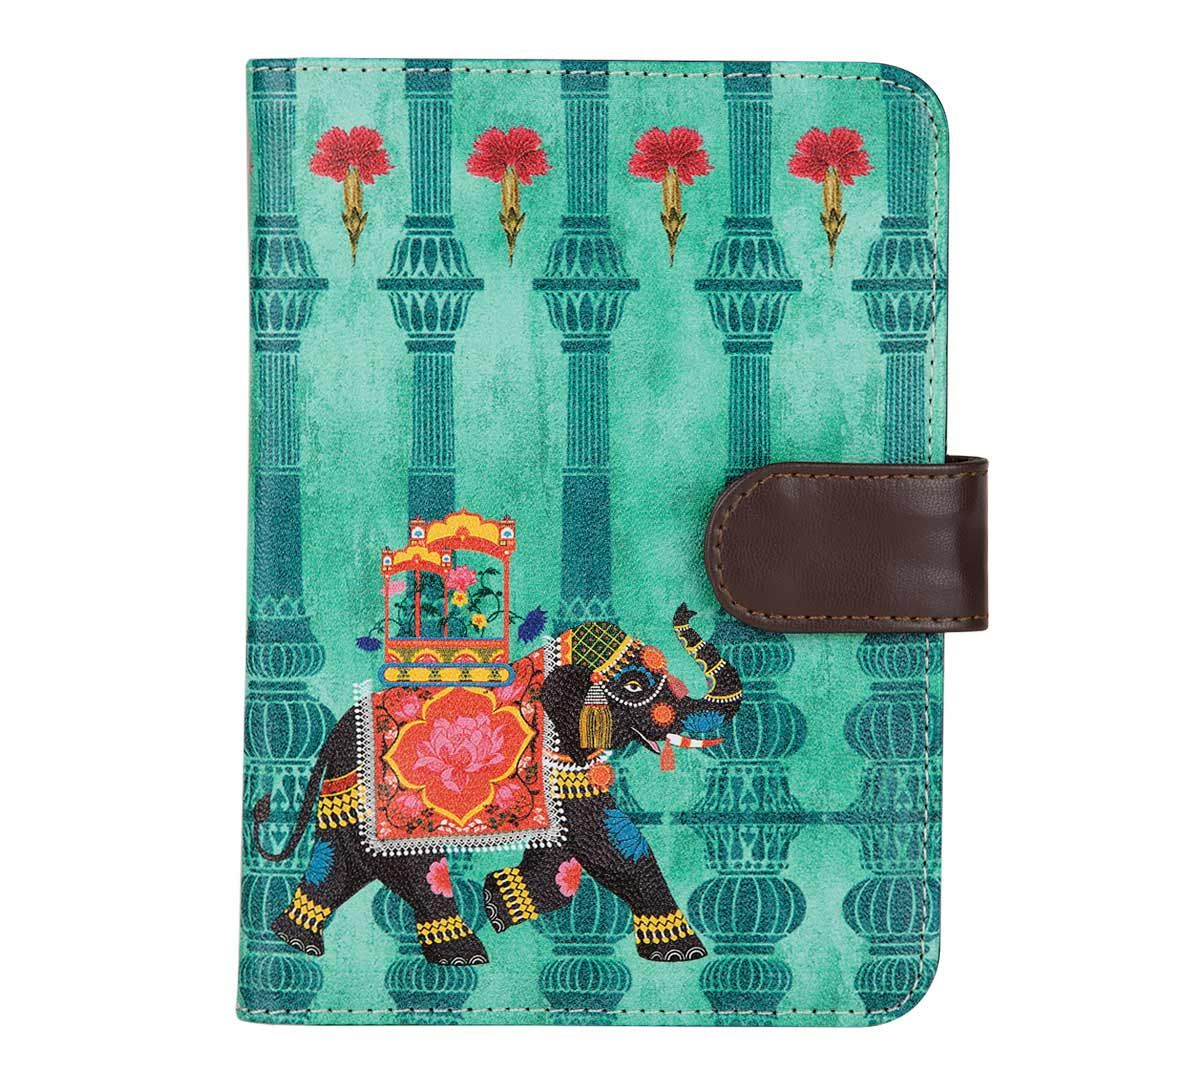 d2814d069 India Circus Tusker Chariot Passport Cover. Tap to expand